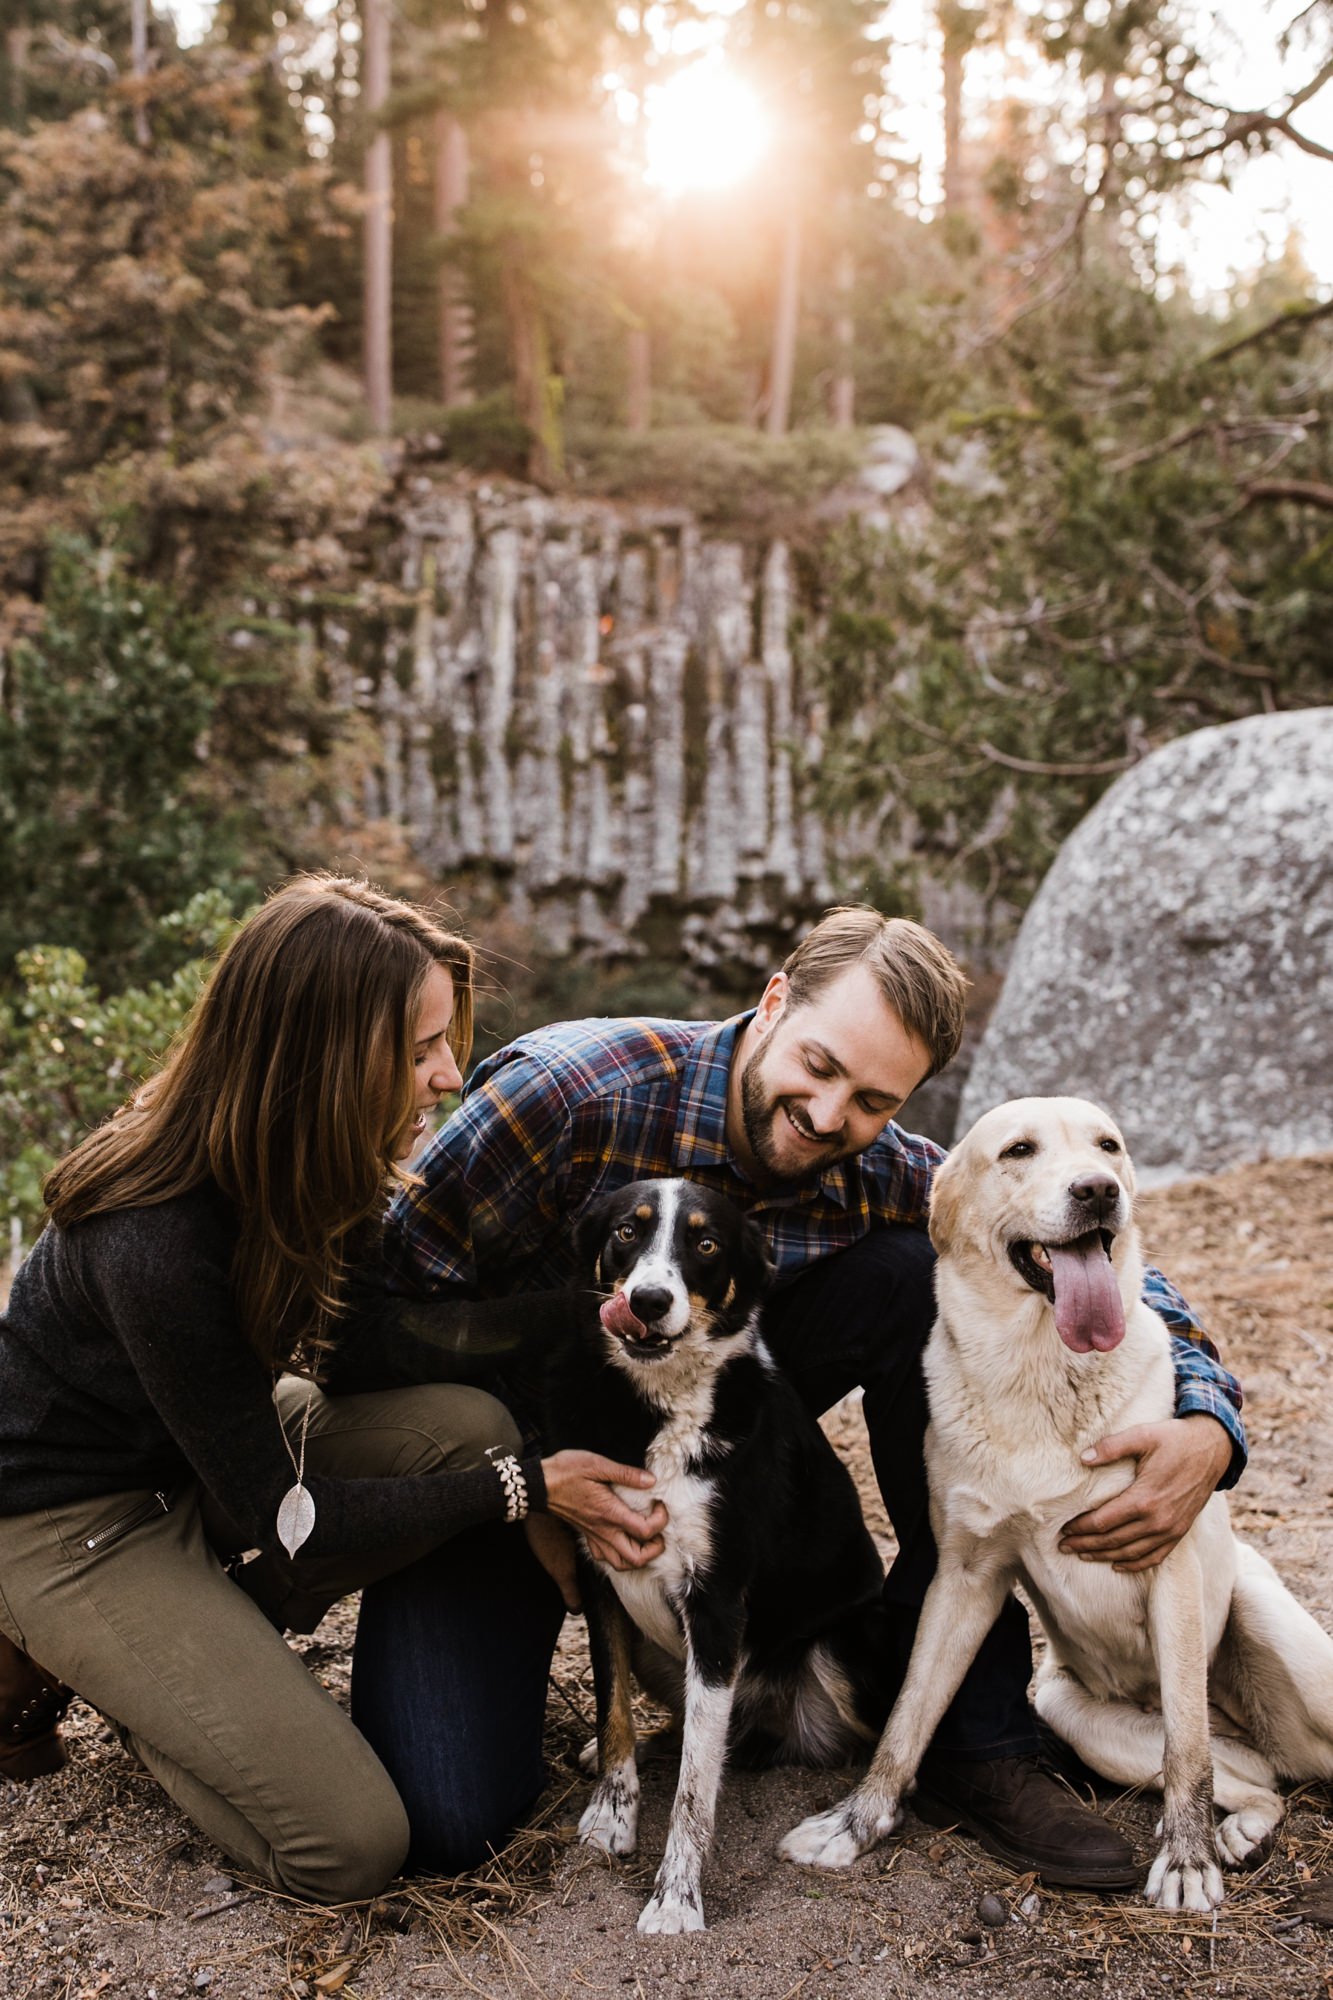 lauren + nick's adventurous national forest engagement session | california adventure elopement photographer | the hearnes adventure photography | www.thehearnes.com